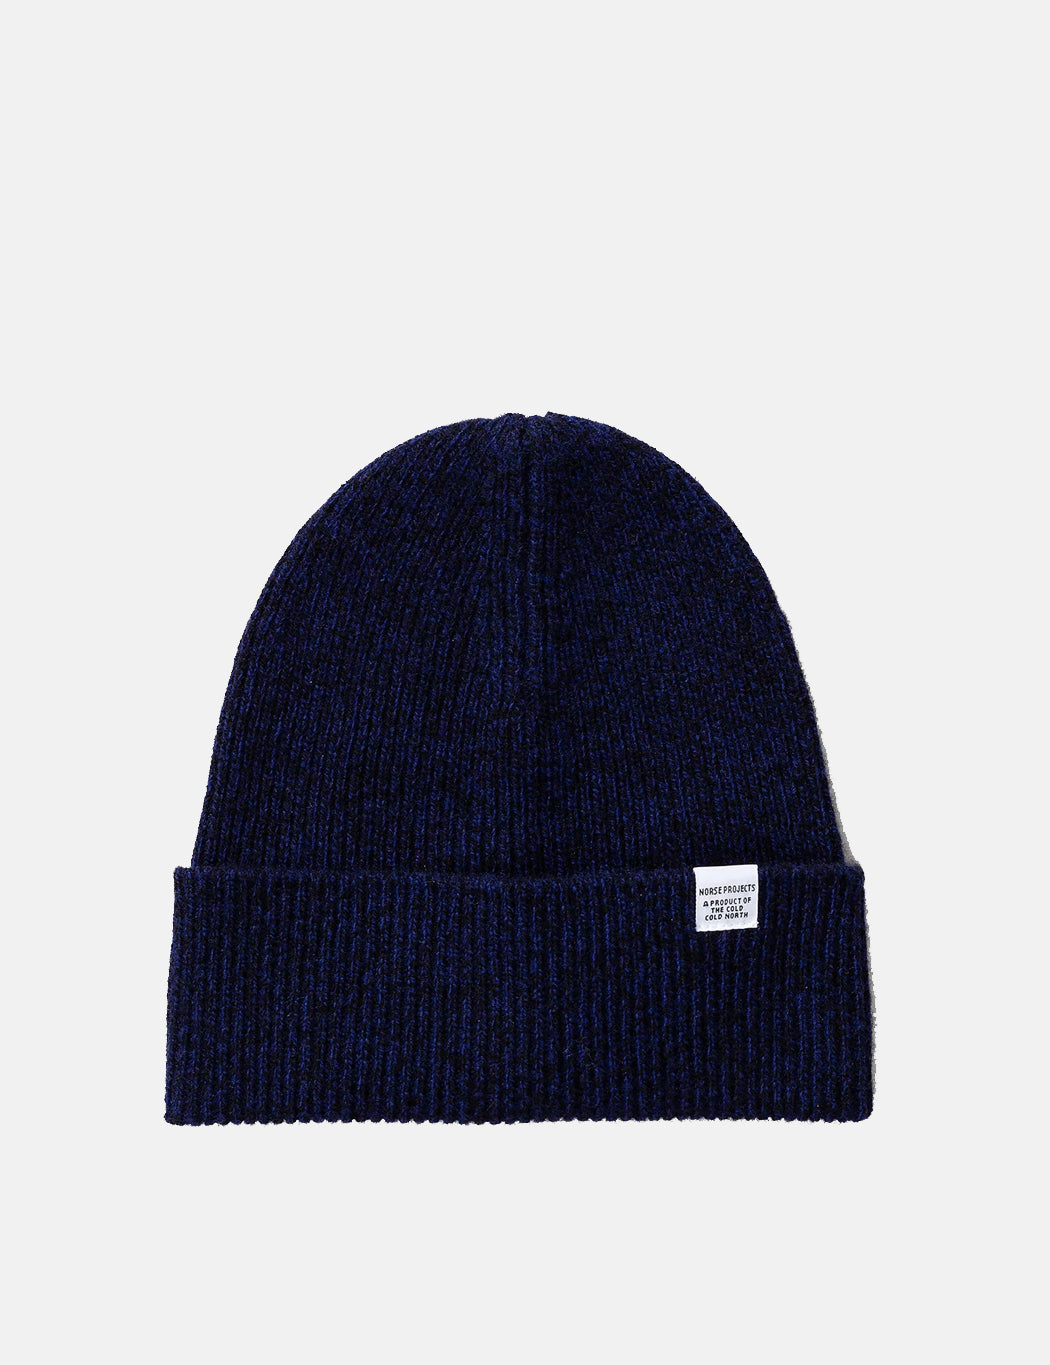 Norse Projects Twist Beanie Hat - Dark Navy Blue | URBAN EXCESS.